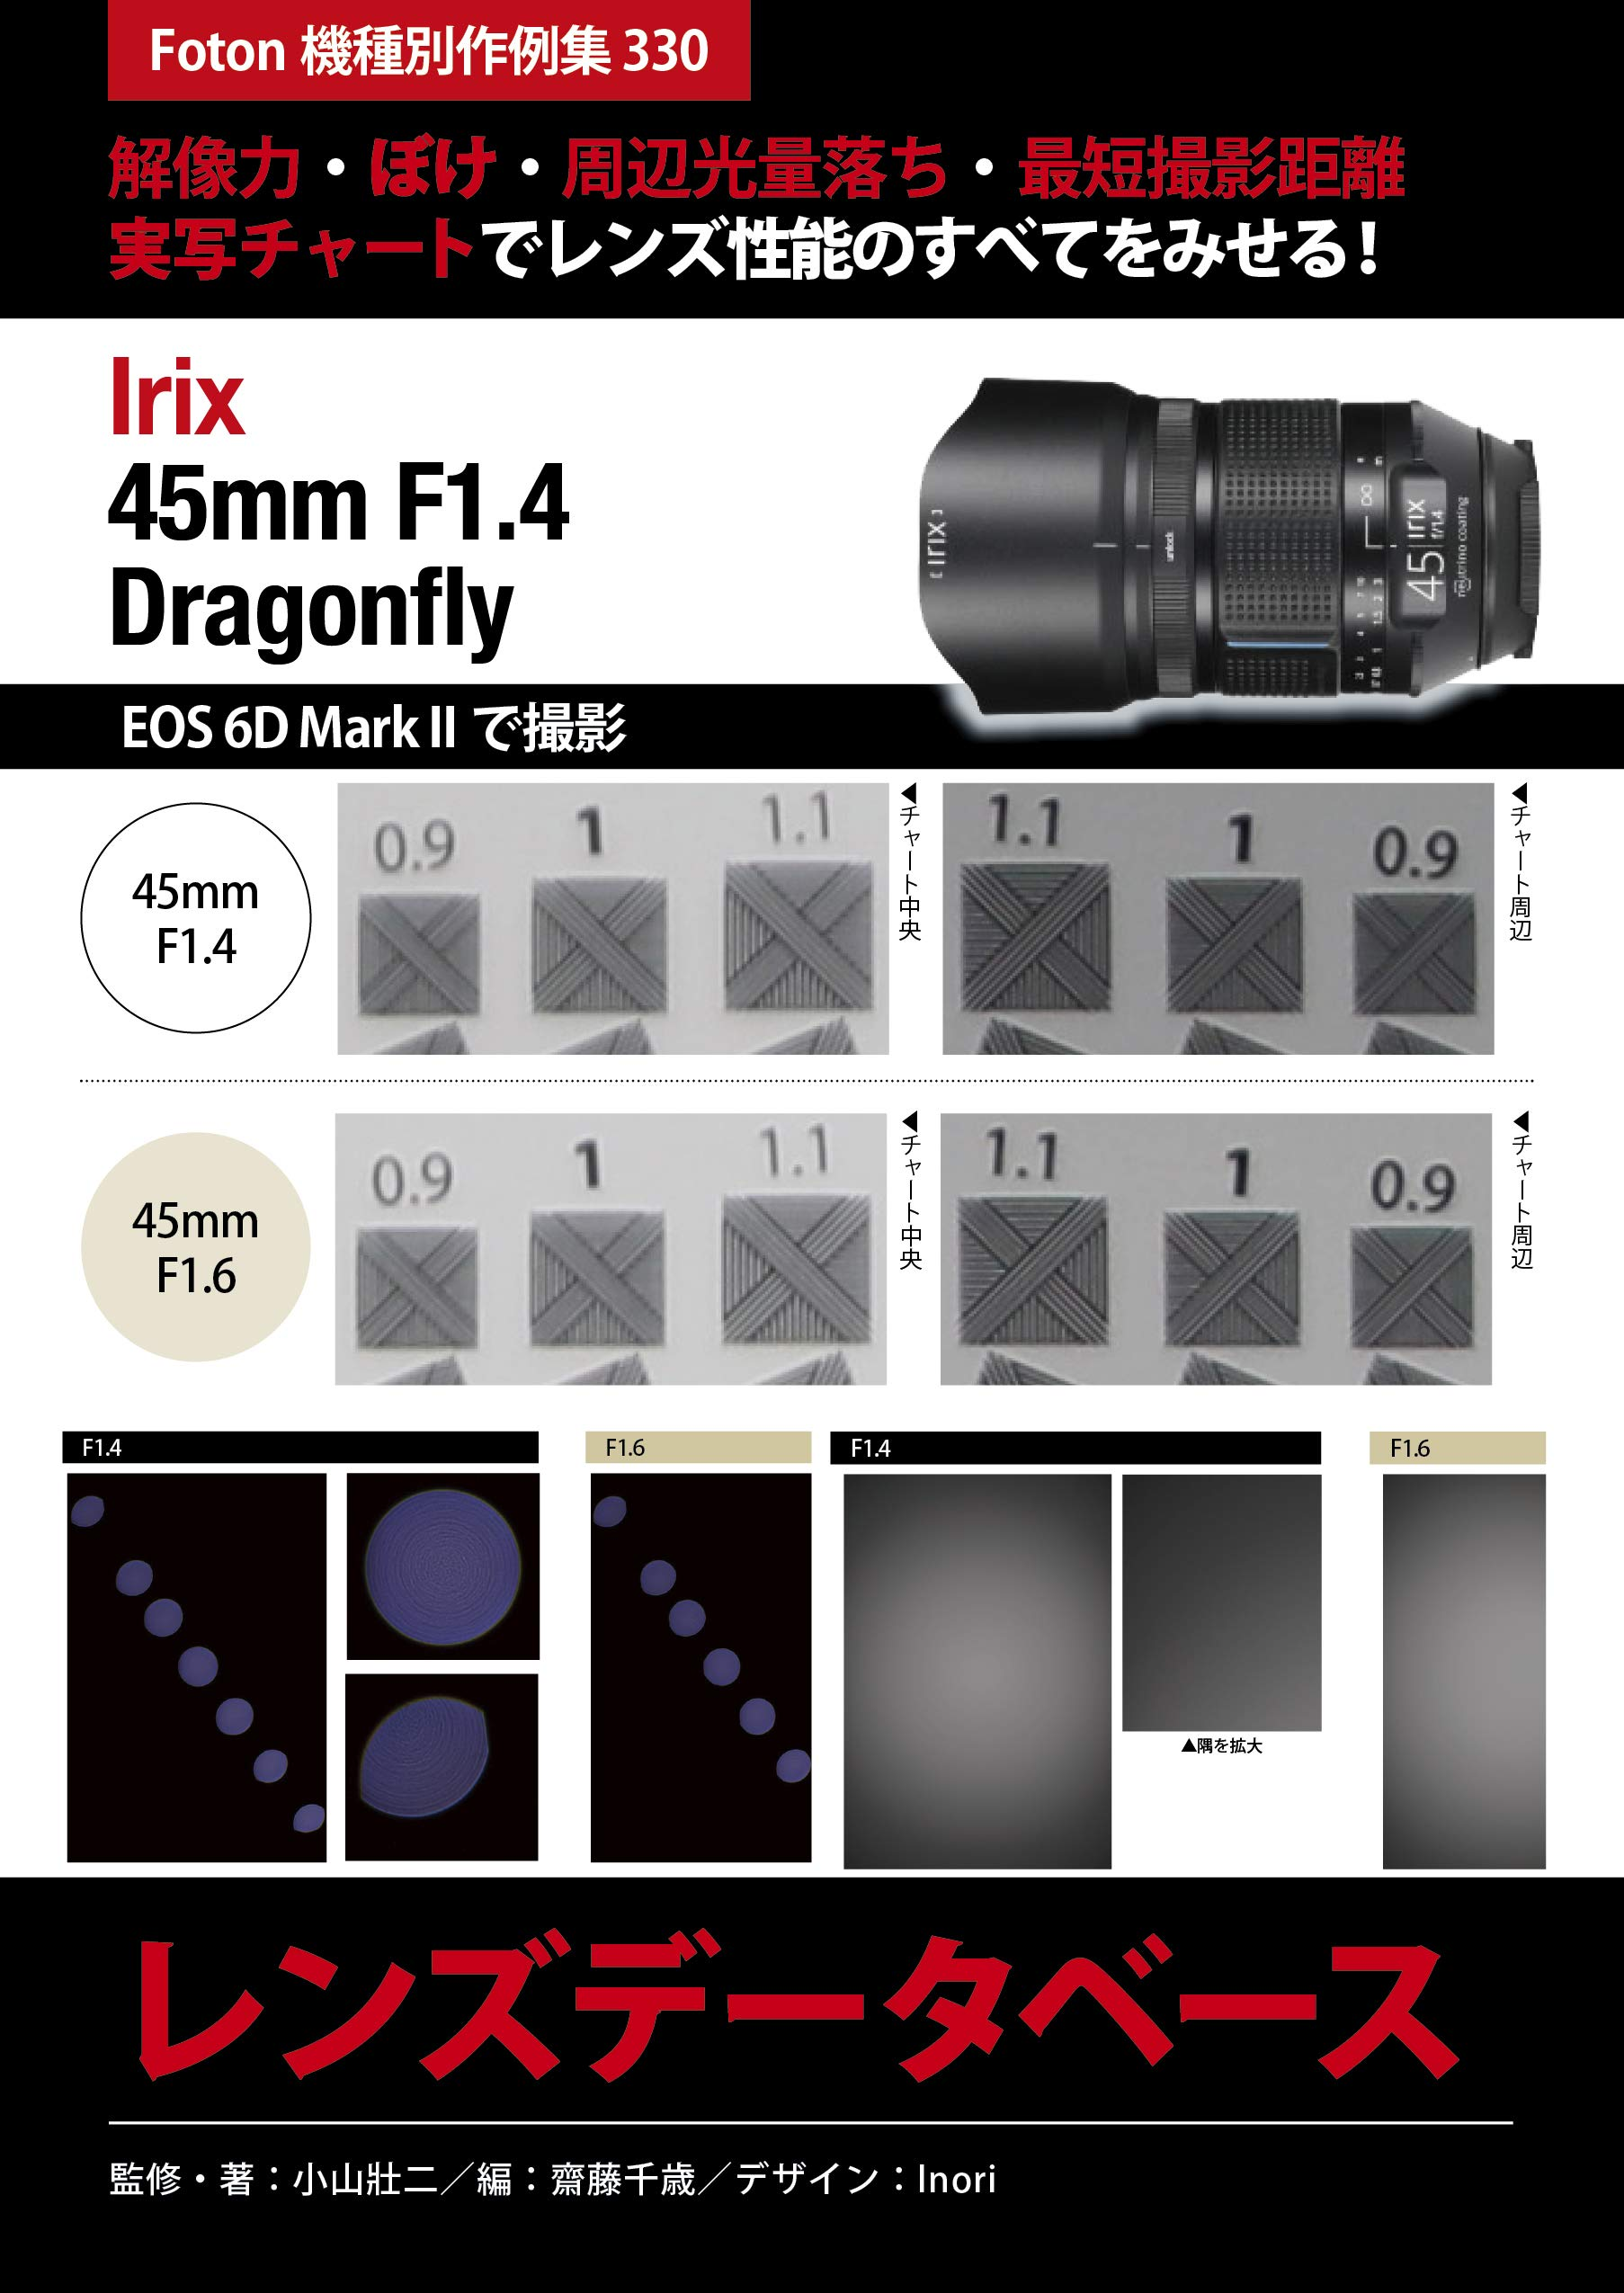 Irix 45mm F14 Dragonfly Lens Database: Foton Photo collection samples 330 Using EOS 6D Mark II